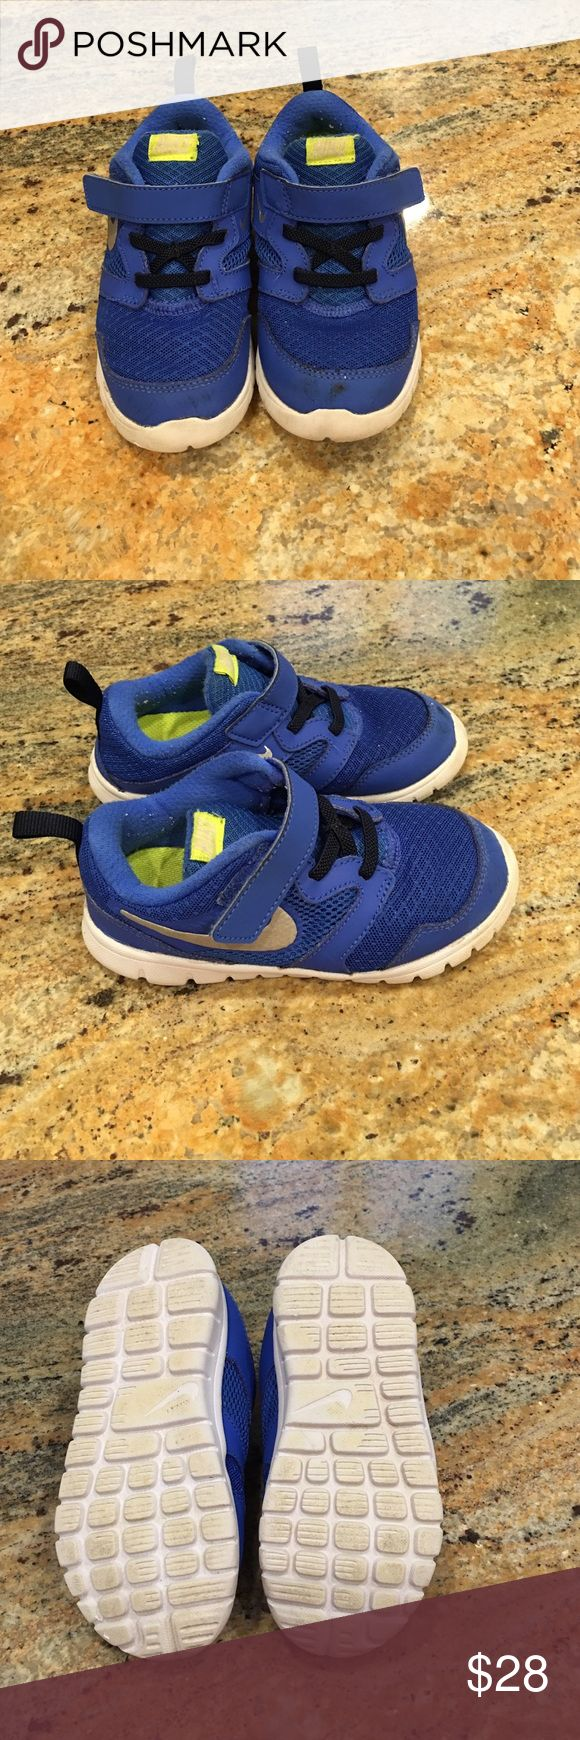 Toddler boys Nike shoes The toddler boys Nike shoes are a size 10. They are neon yellow and blue. Nike Shoes Sneakers